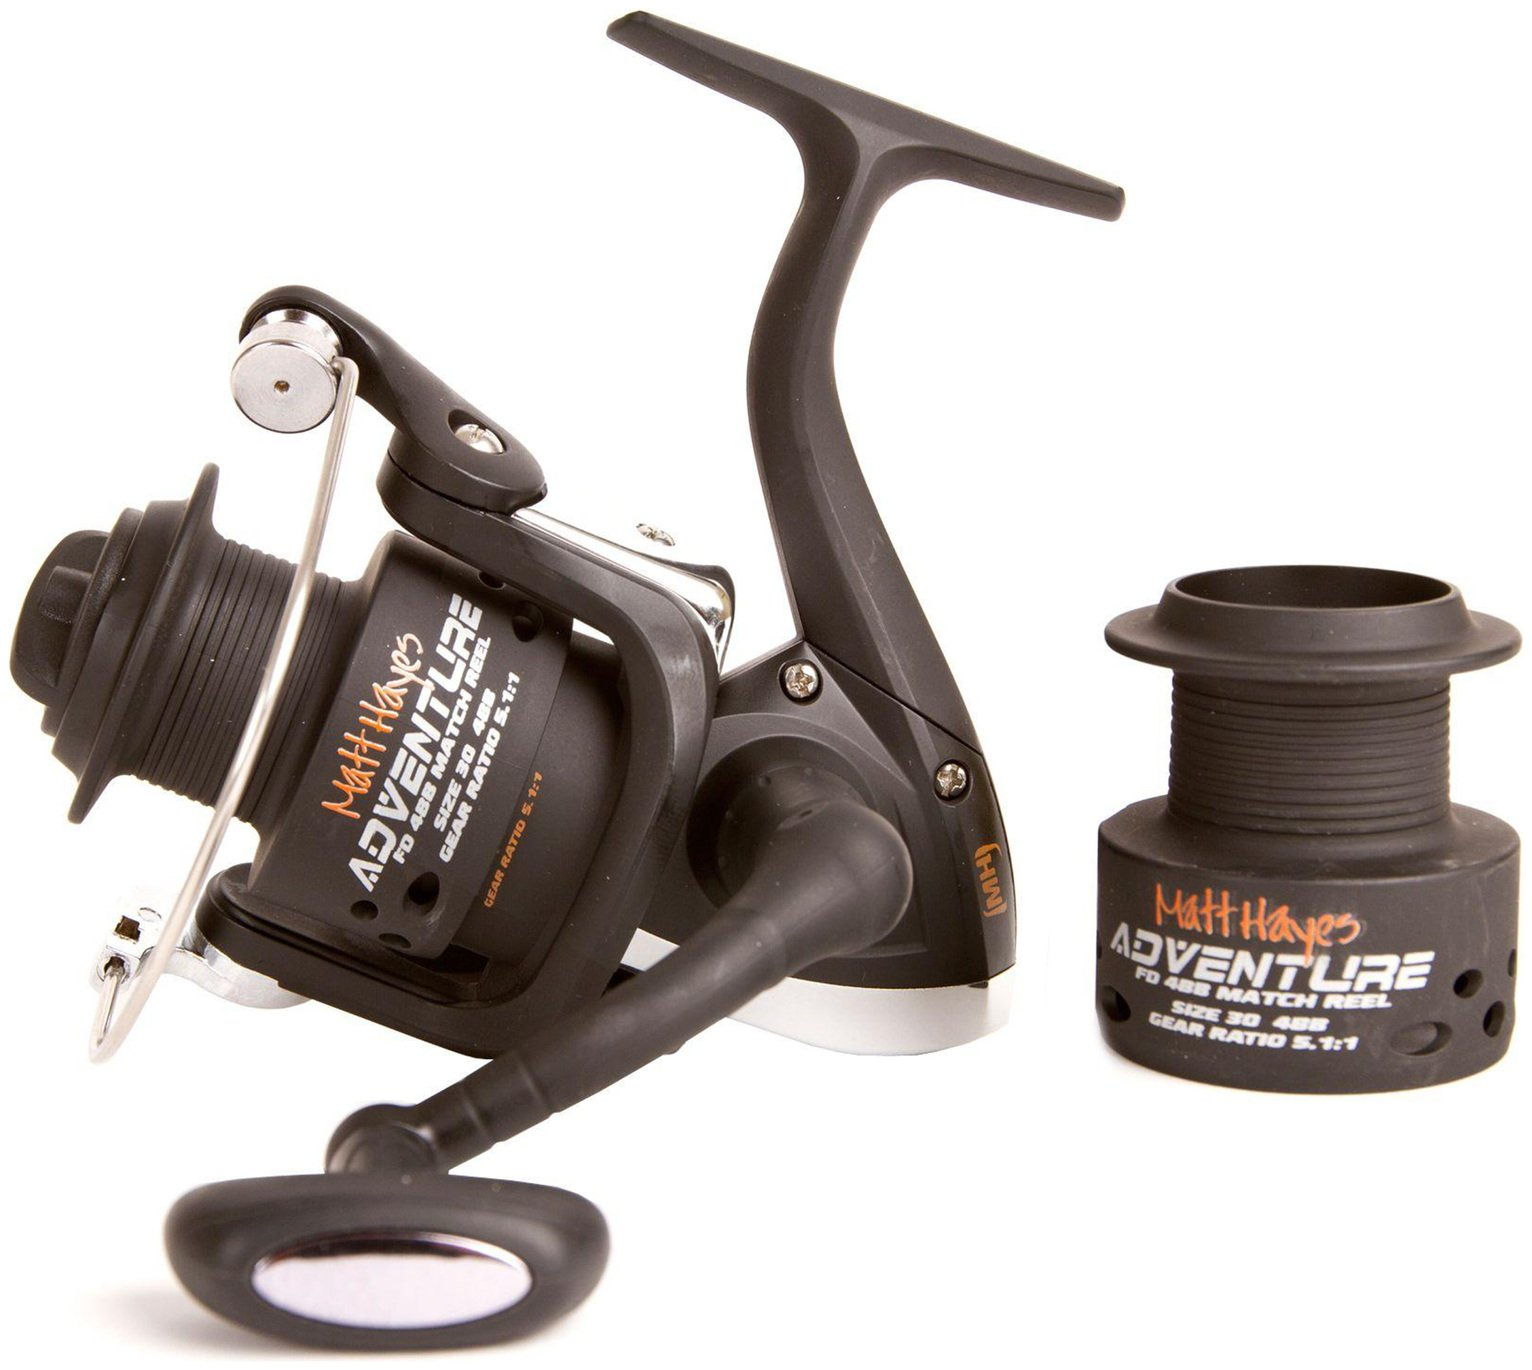 Matt Hayes Adventure Coarse Fishing Reel - Size 30